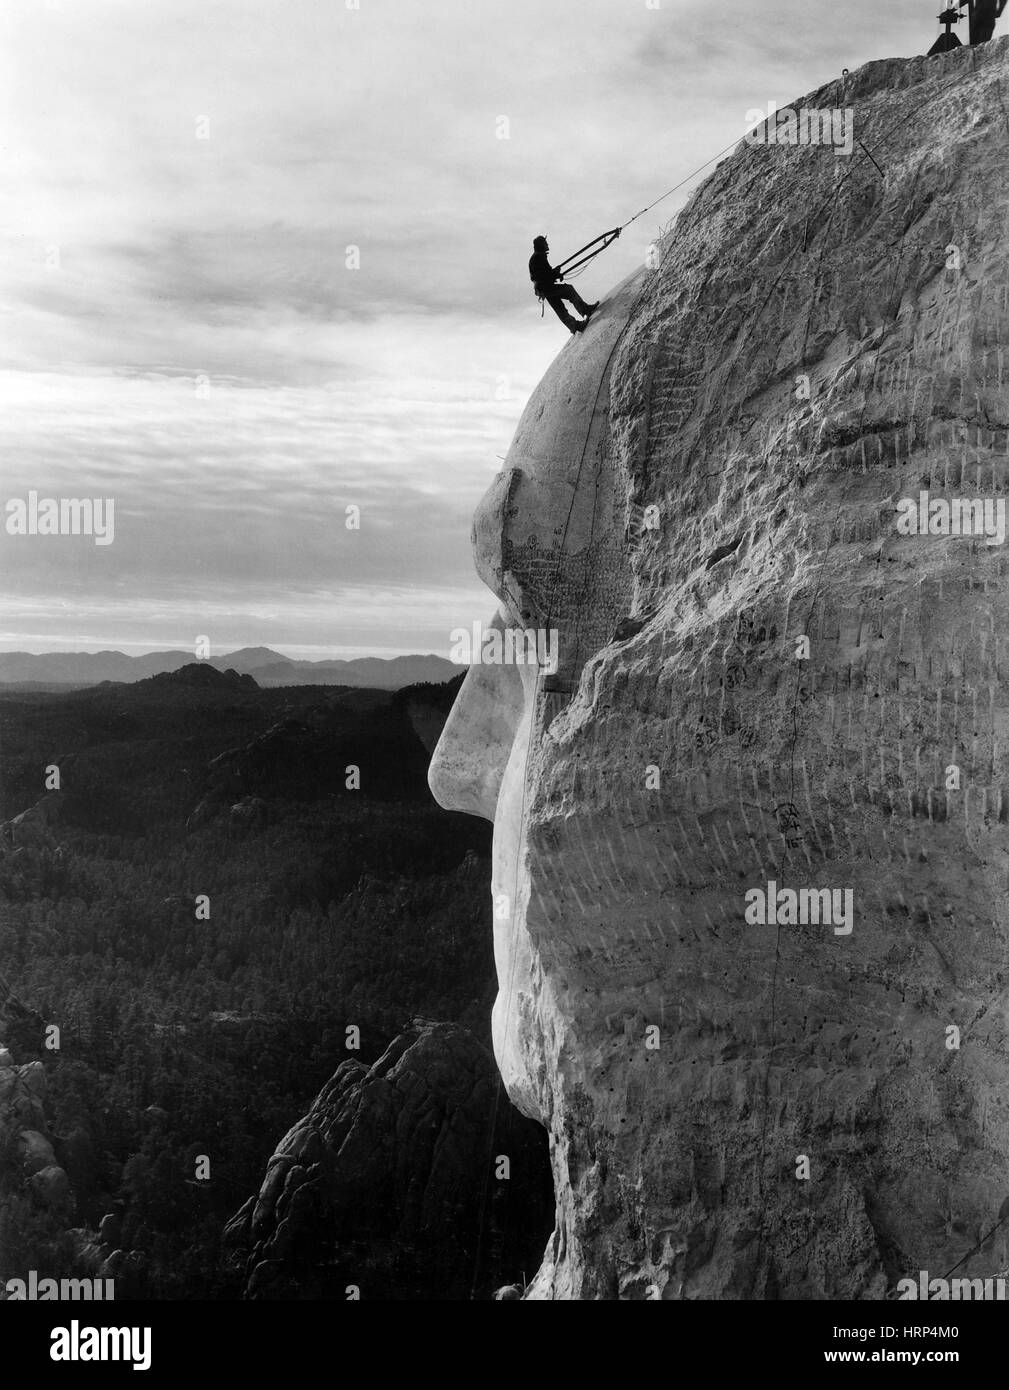 Worker Scaling Head on Mount Rushmore, 1930s - Stock Image